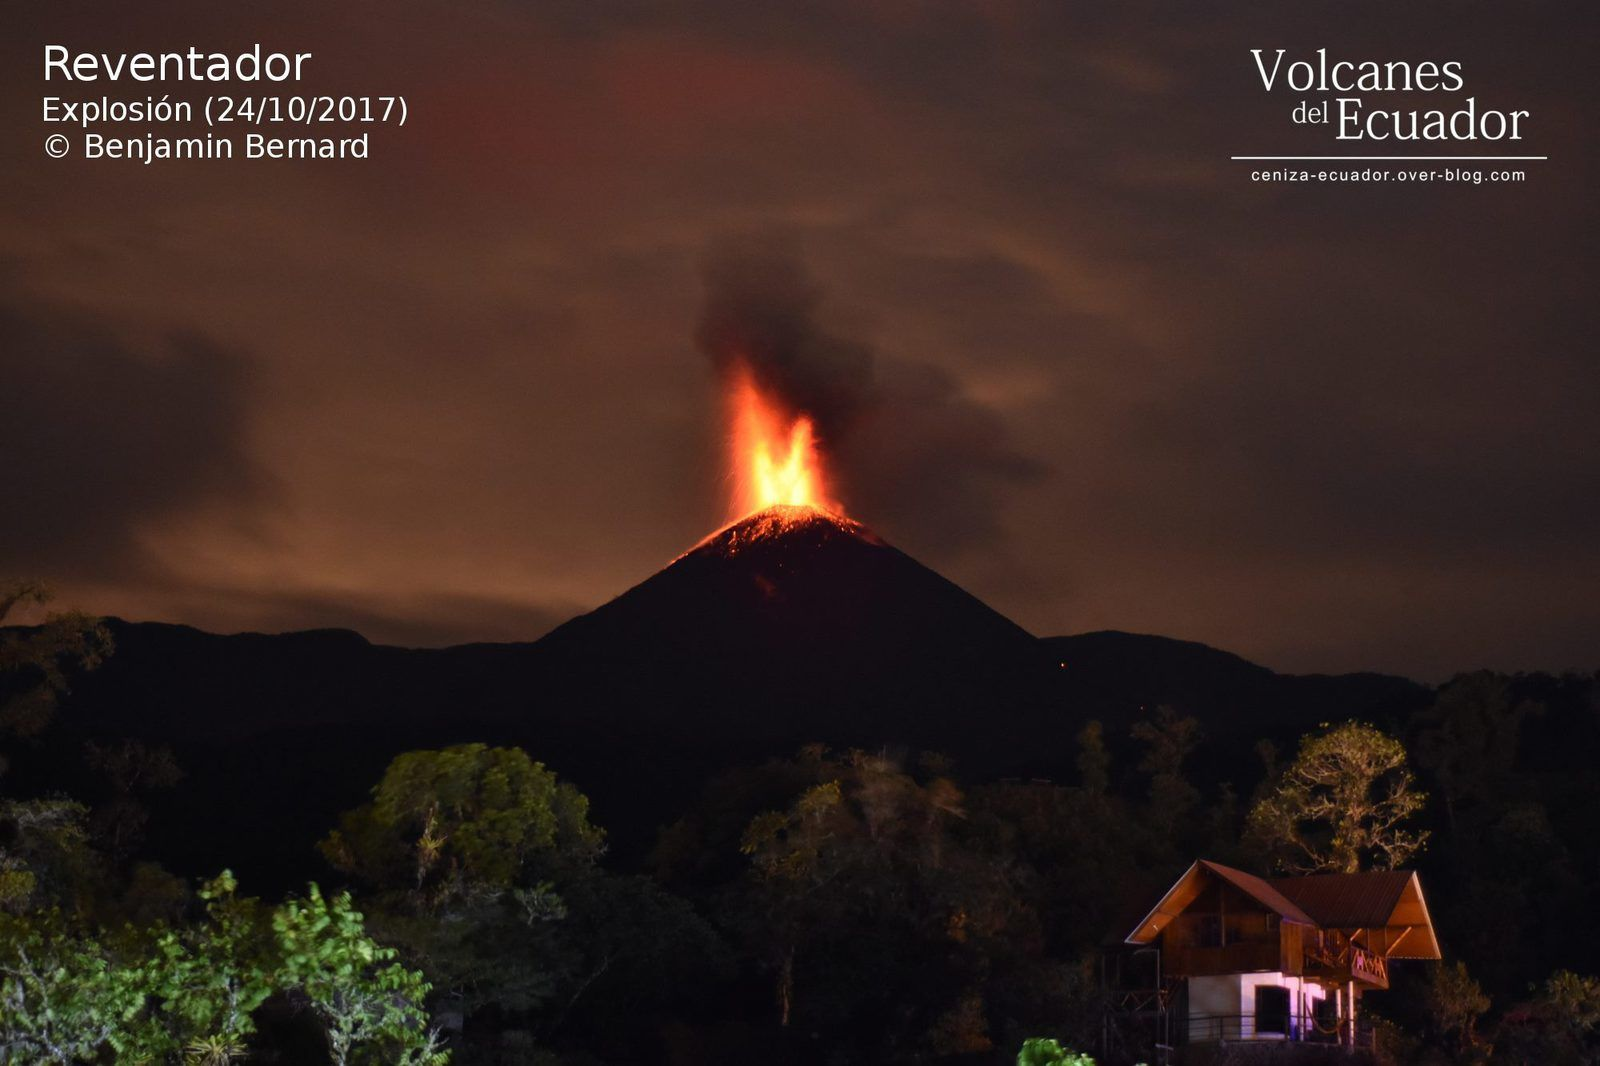 Reventador - explosive activity from 24.10.2017 - photo Benjamin Bernard / IGEPN via Ecuador volcanoes